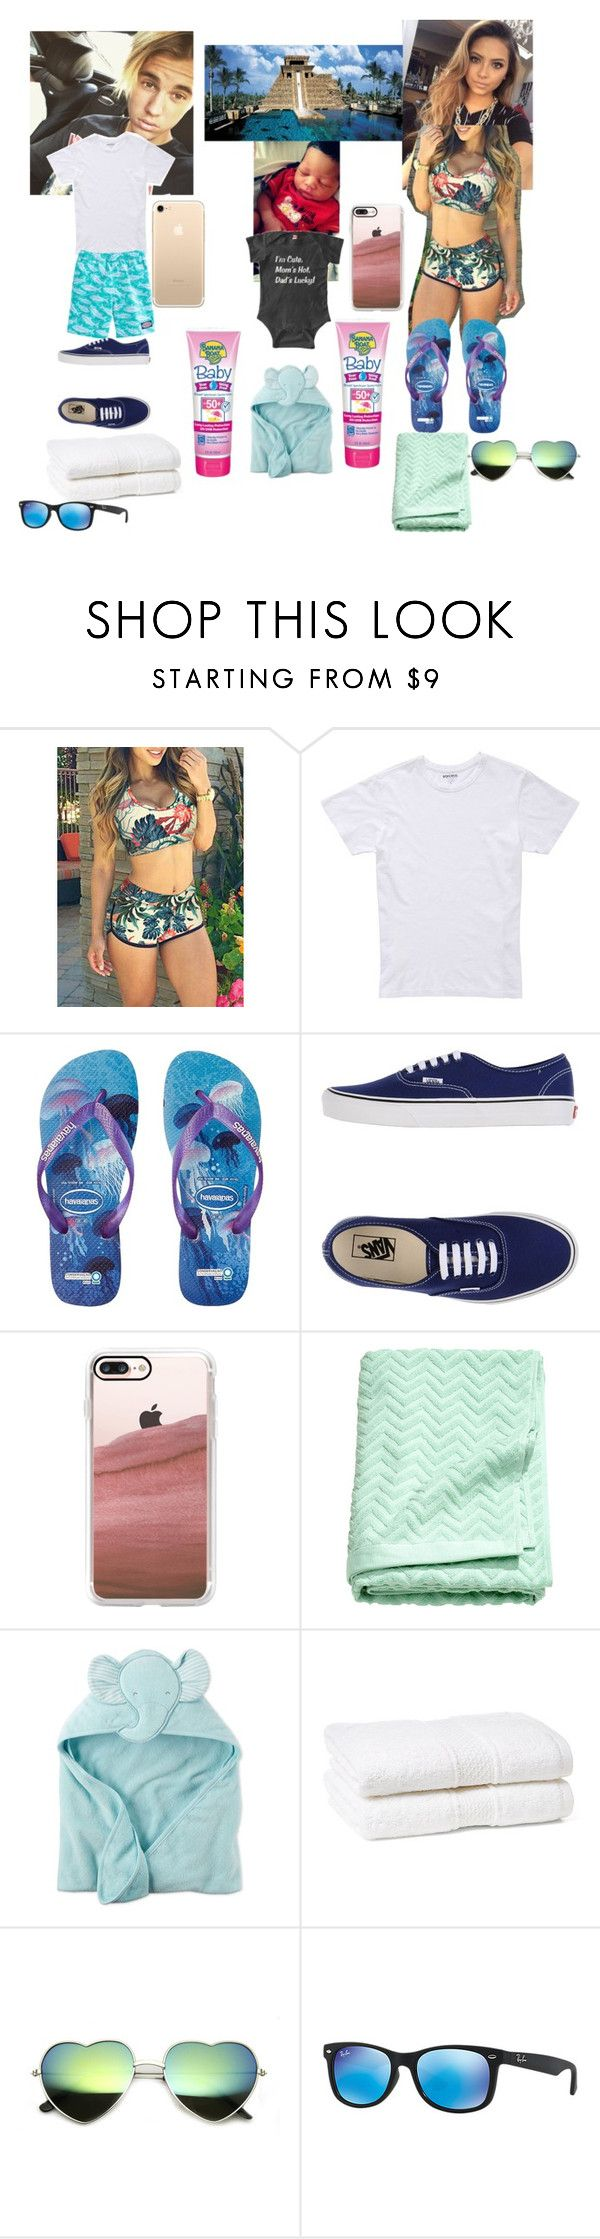 """💗Justin💗👶Christian👶💋Lana💋"" by geazybxtch24 ❤ liked on Polyvore featuring interior, interiors, interior design, home, home decor, interior decorating, Justin Bieber, Atlantis, Bonobos and Upstream"